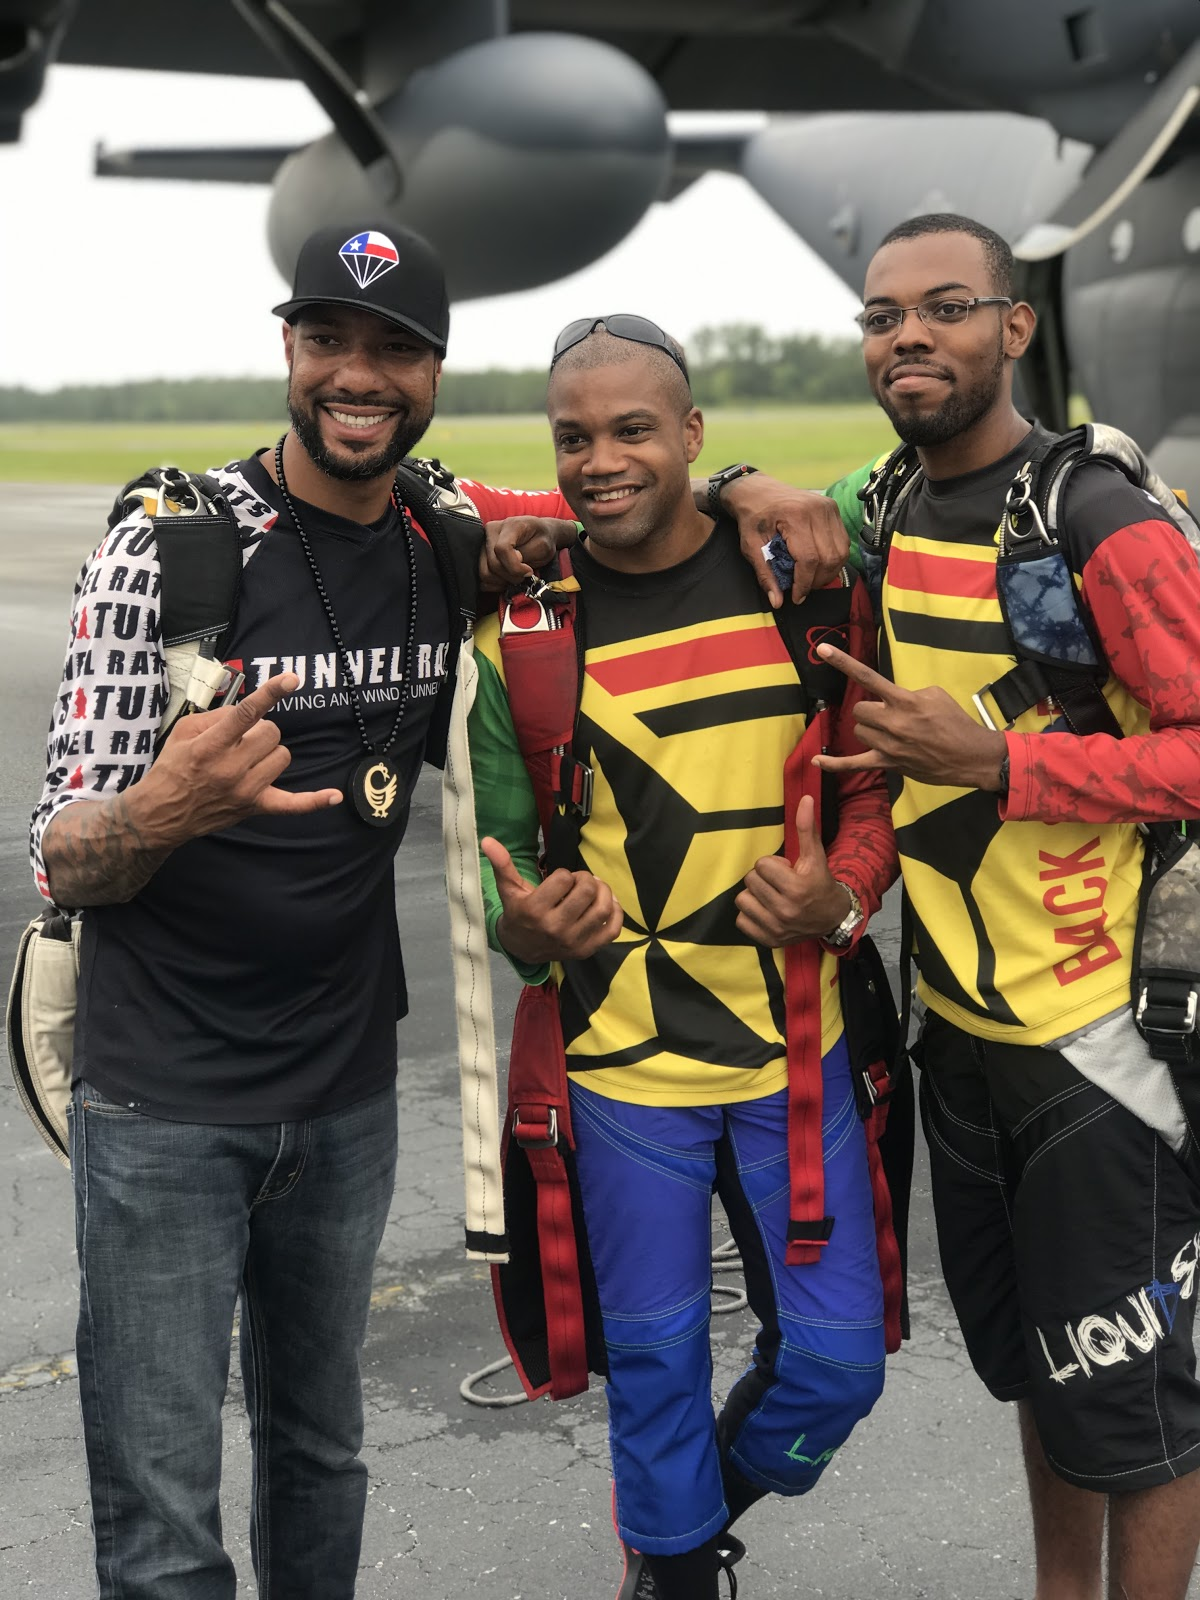 Skydivers  Waz Choudhry ,  Nicholas Walker  and  Will Middlebrooks  flash shaka signs at the camera during the Legacy Flight Academy  Eyes Above the Horizon  flight camp in Valdosta, GA.  Photo courtesy of Danielle Williams.